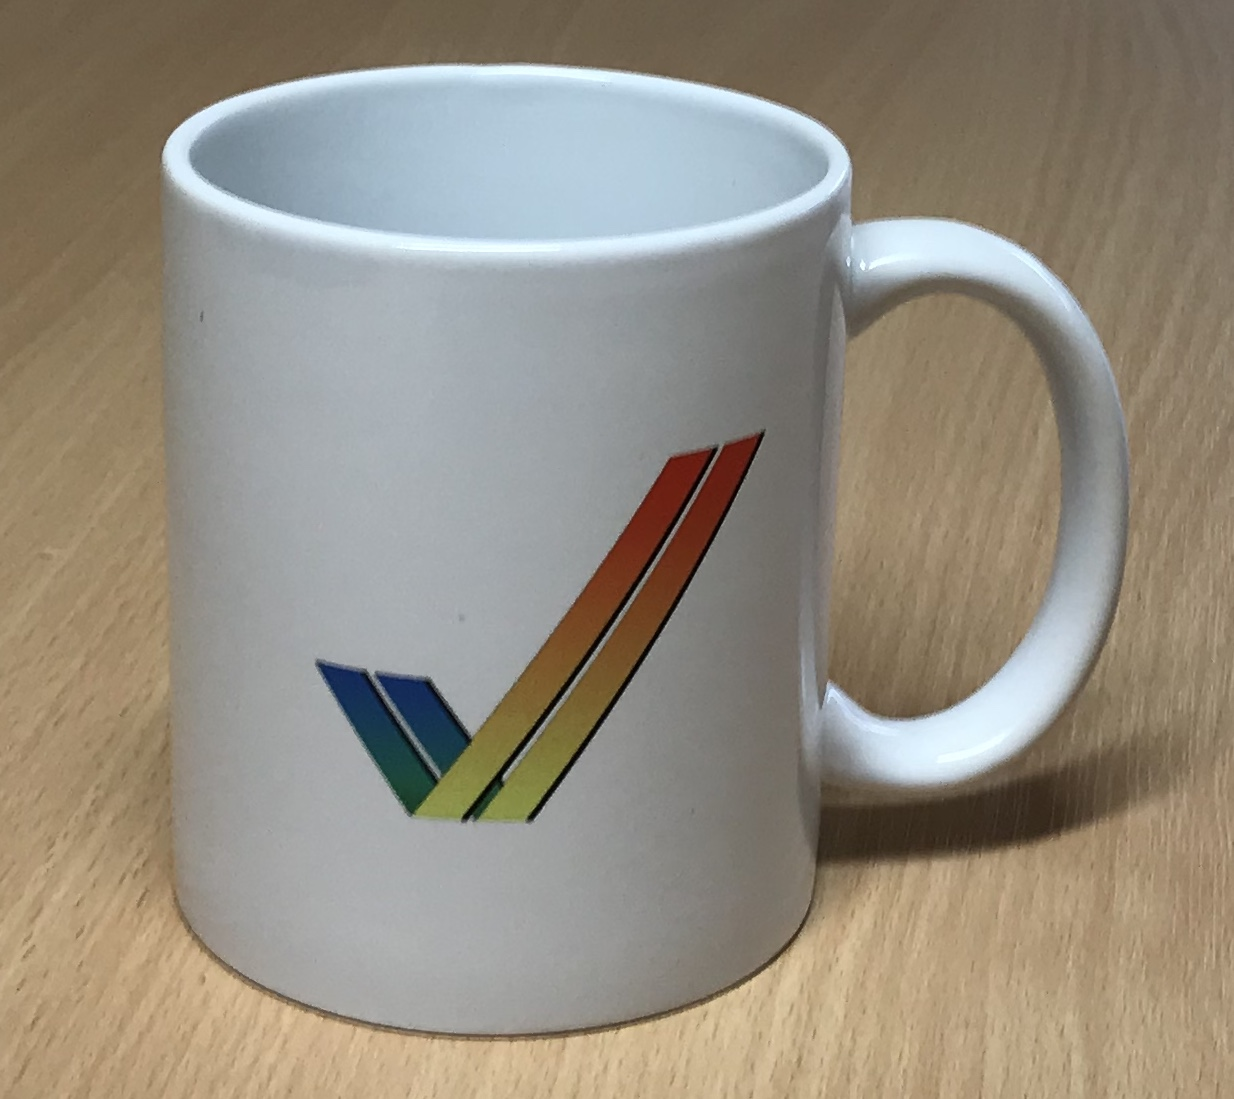 Rainbow Double Tick / Checkmark Drinking Mug